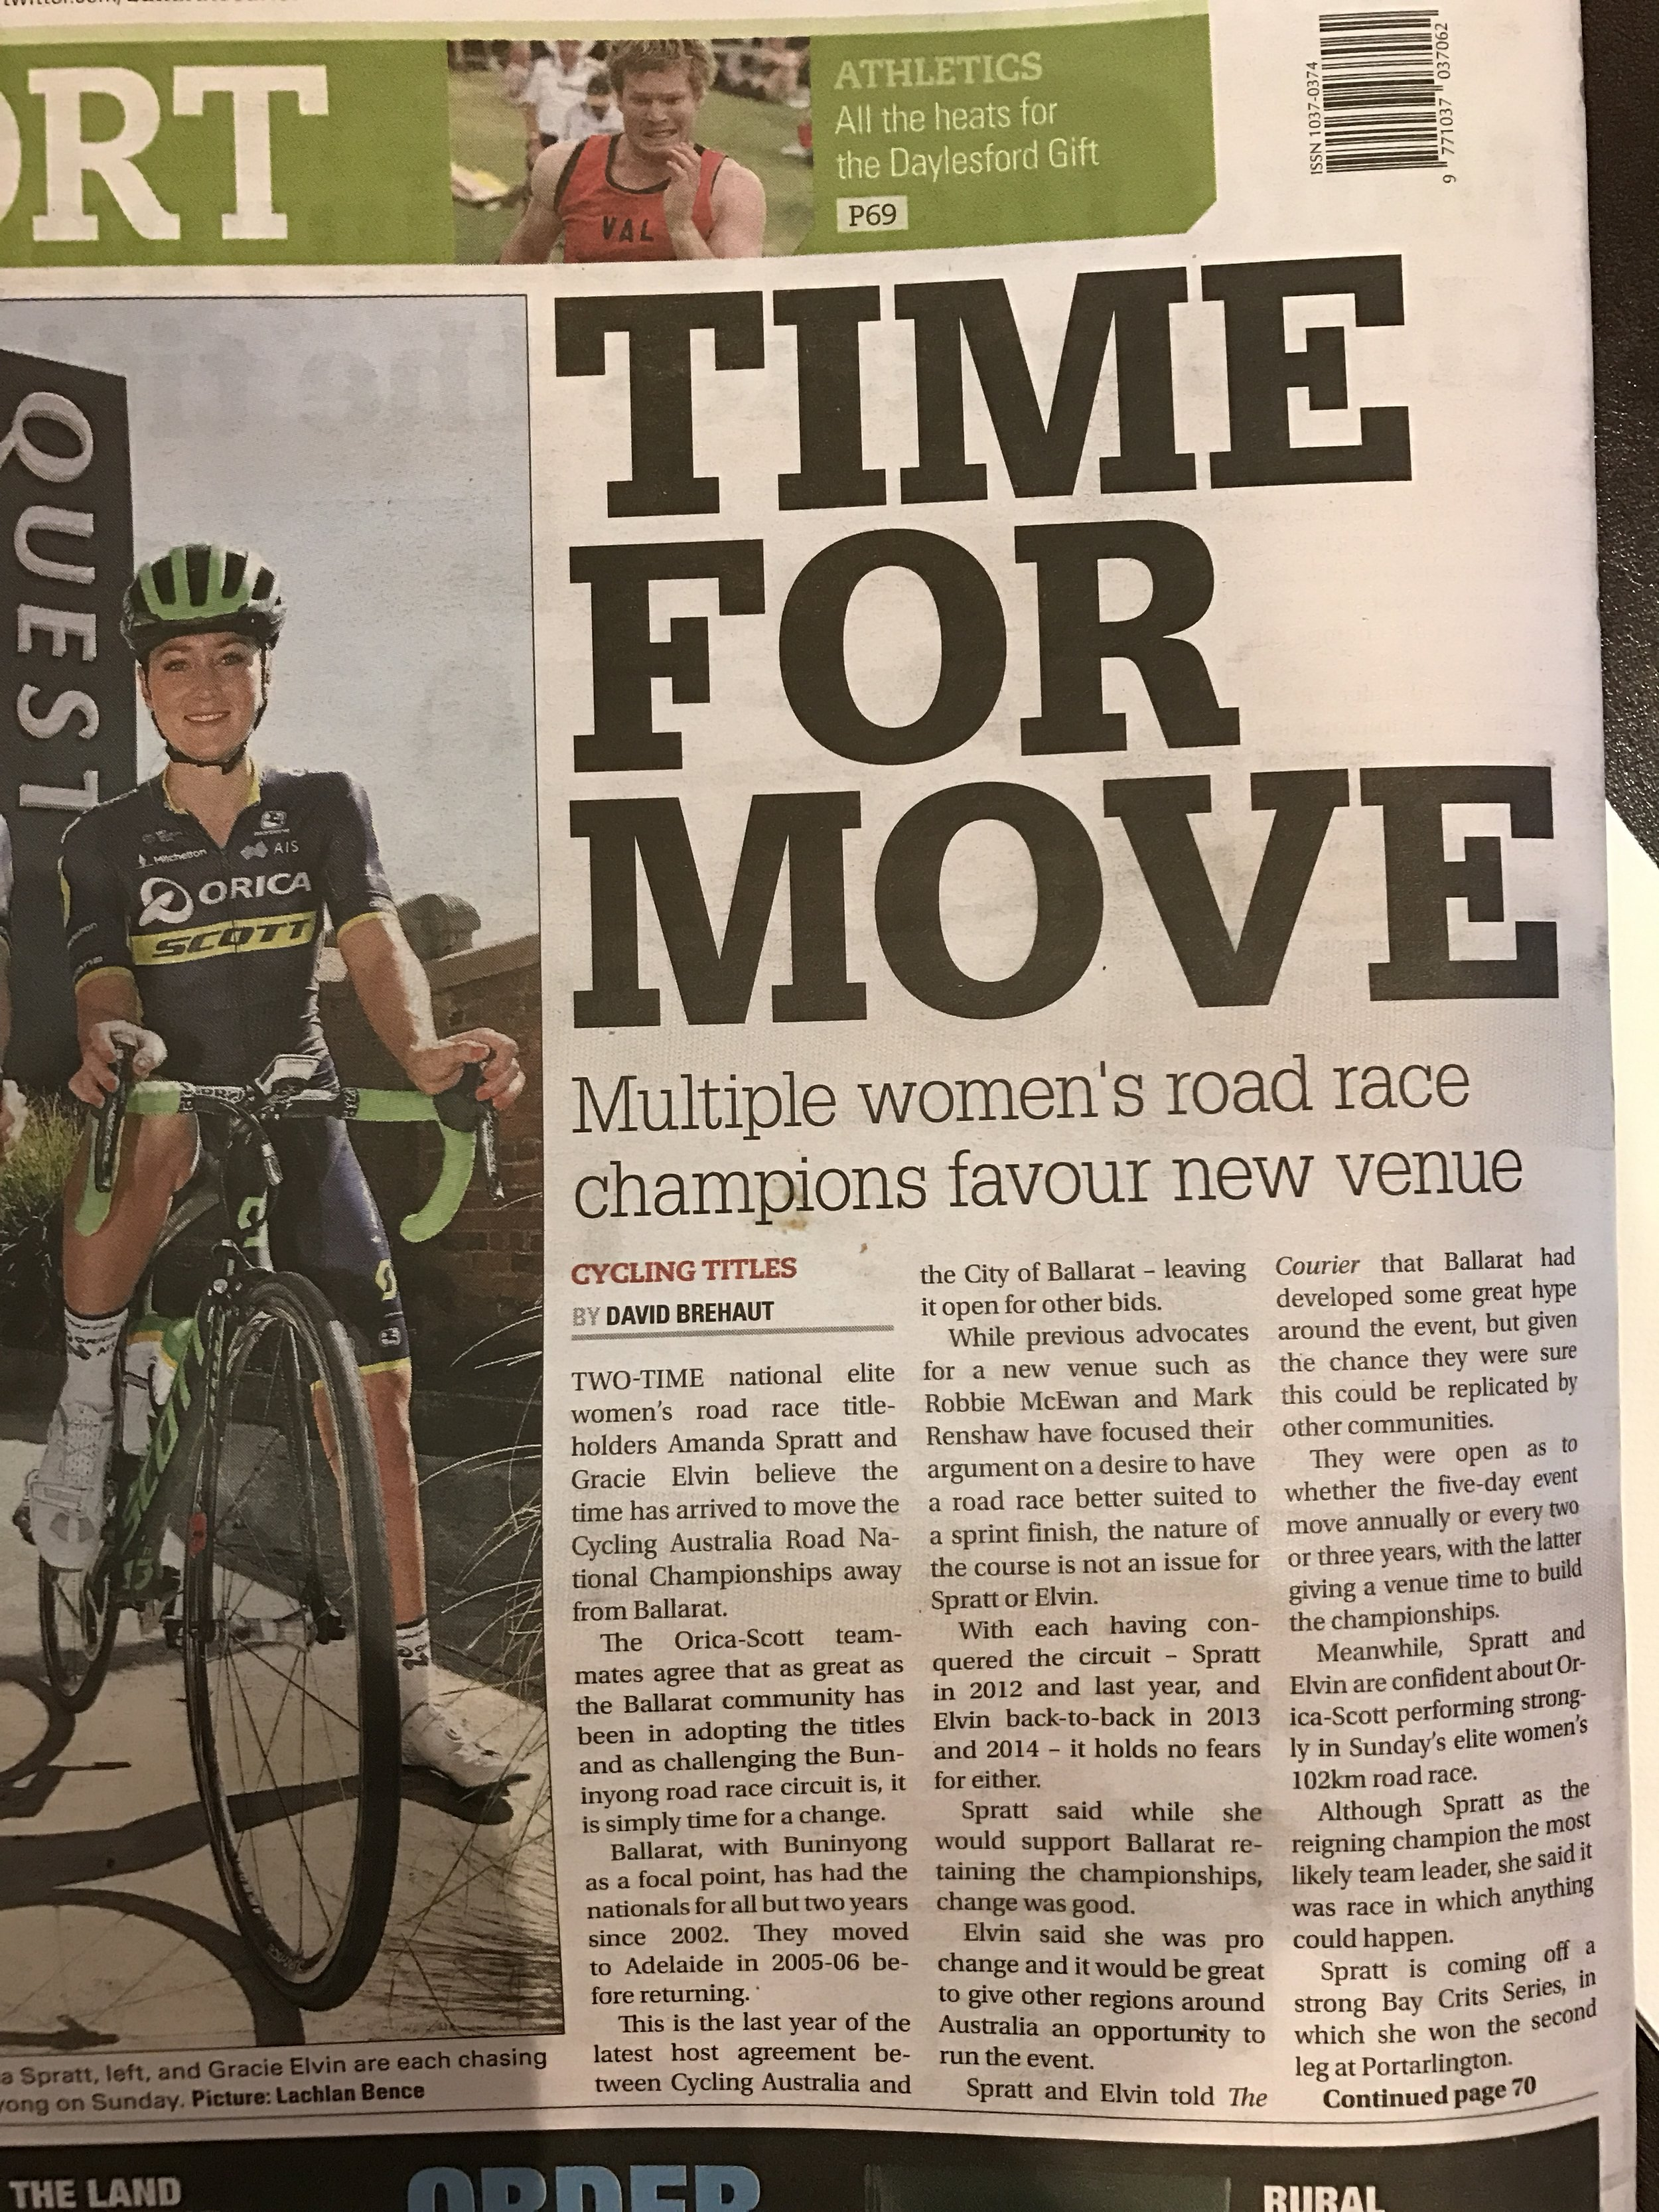 Ballarat 17 - The local newspaper lead story on the Saturday of the Under 23 Road Championships. The local journalists for some reason were fixated with headlining why we'd like to leave Ballarat instead of celebrating the current event itself .